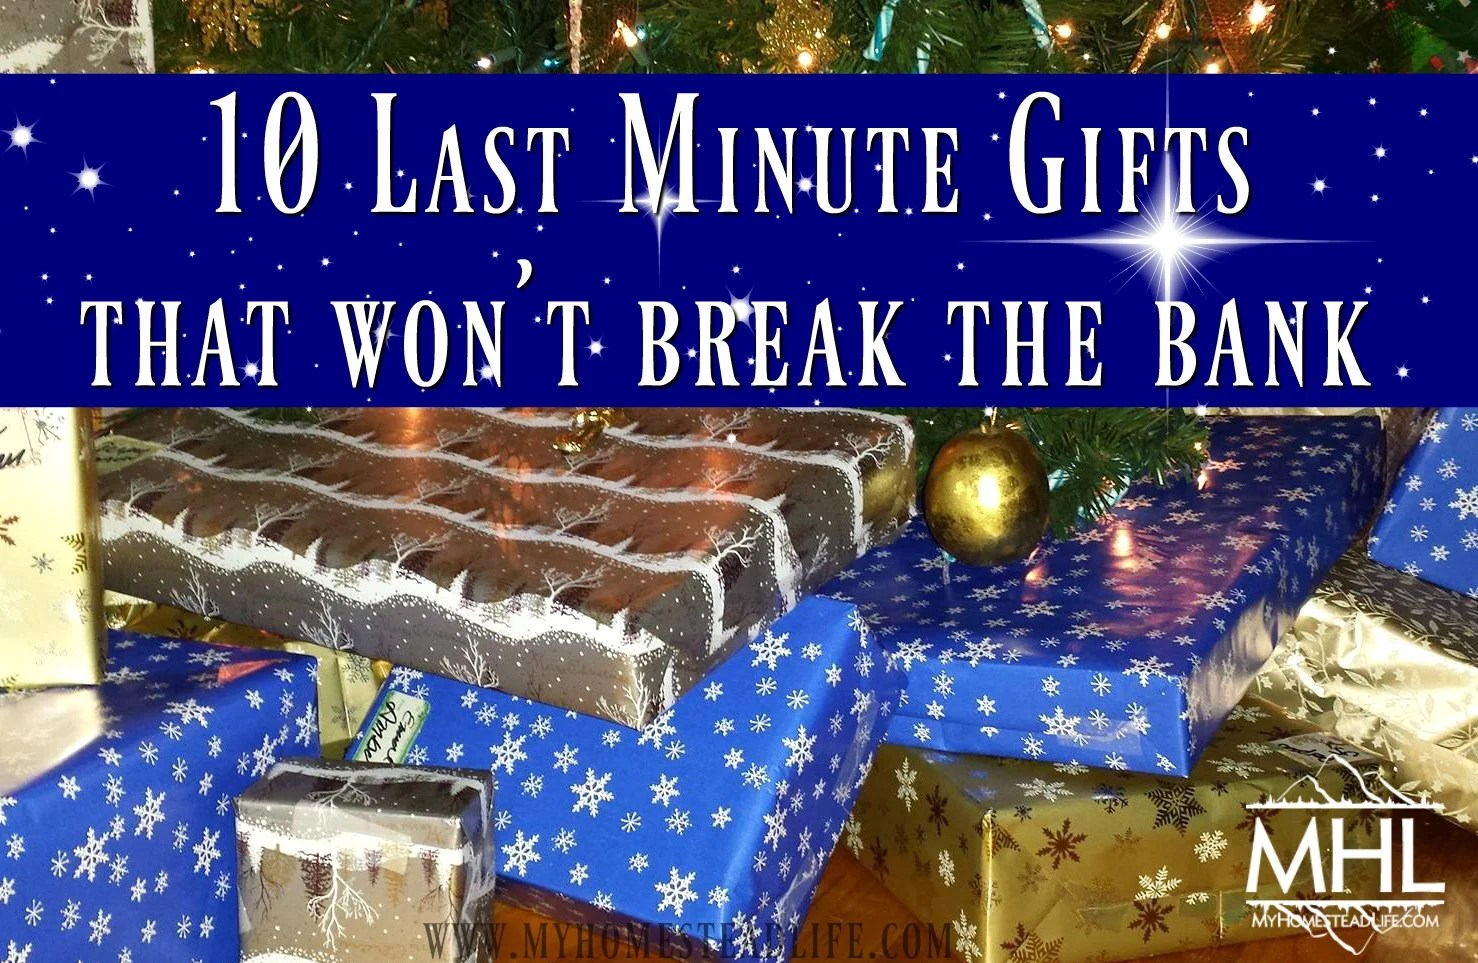 10 Last Minute Gifts That Won't Break The Bank